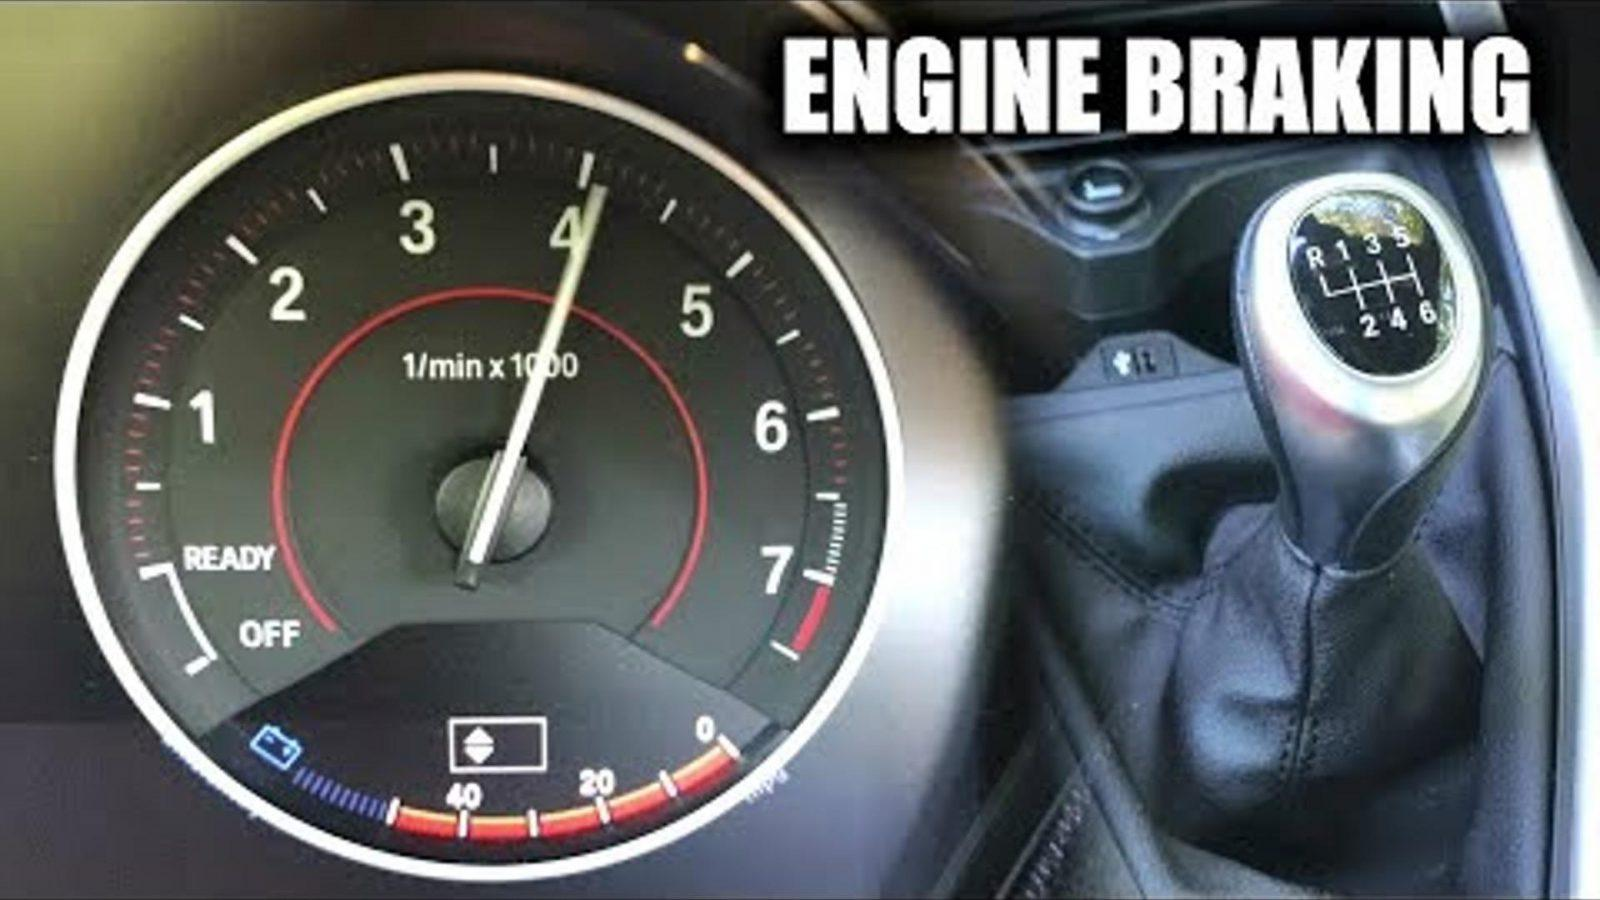 Engine Braking With A Manual Transmission Bad Or Good Car Brake System Diagram Passenger